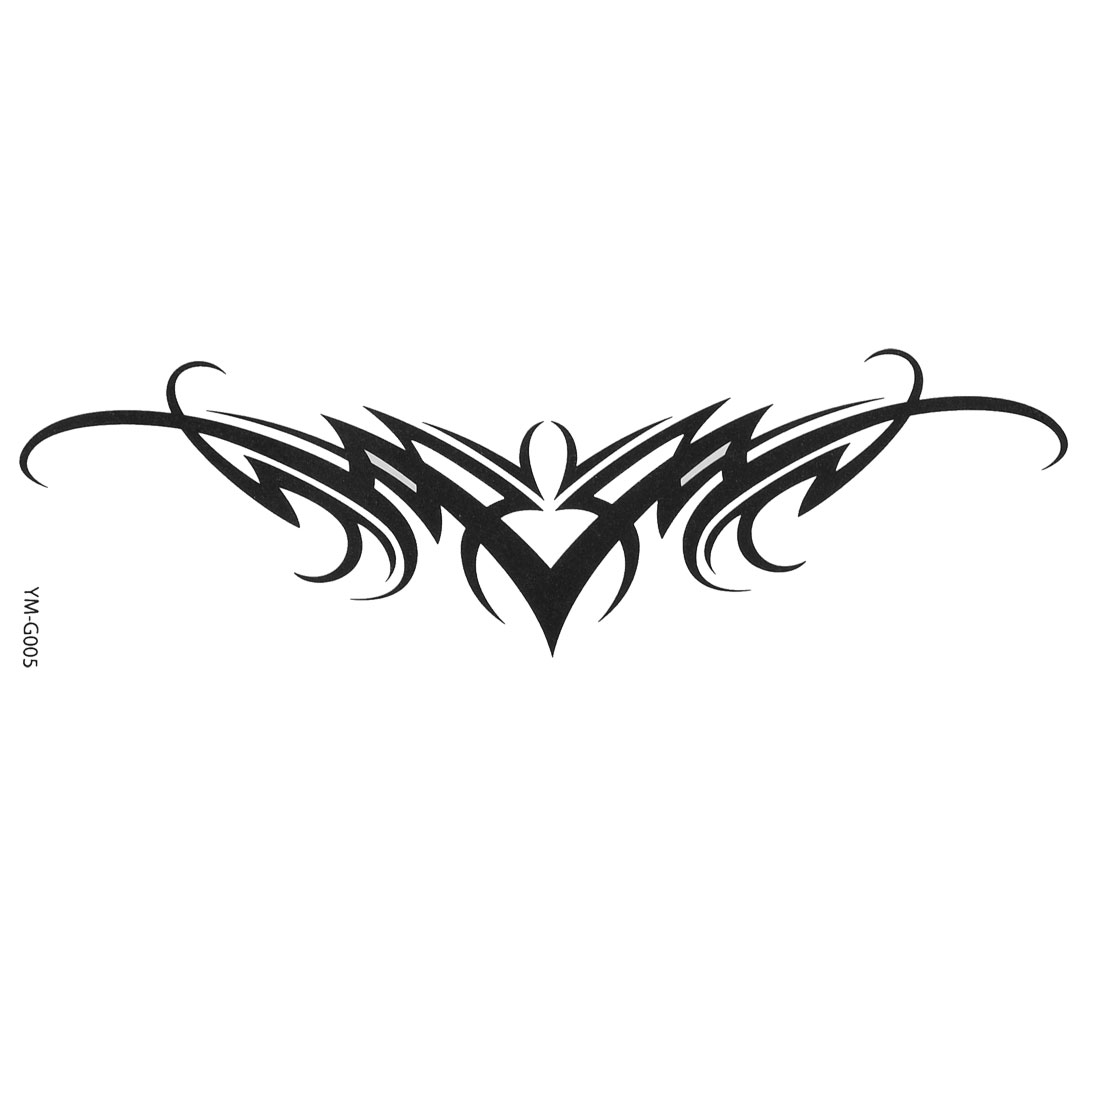 Black Letter V Design Transfer Tribal Tattoos Seal Skin Beauty Decal